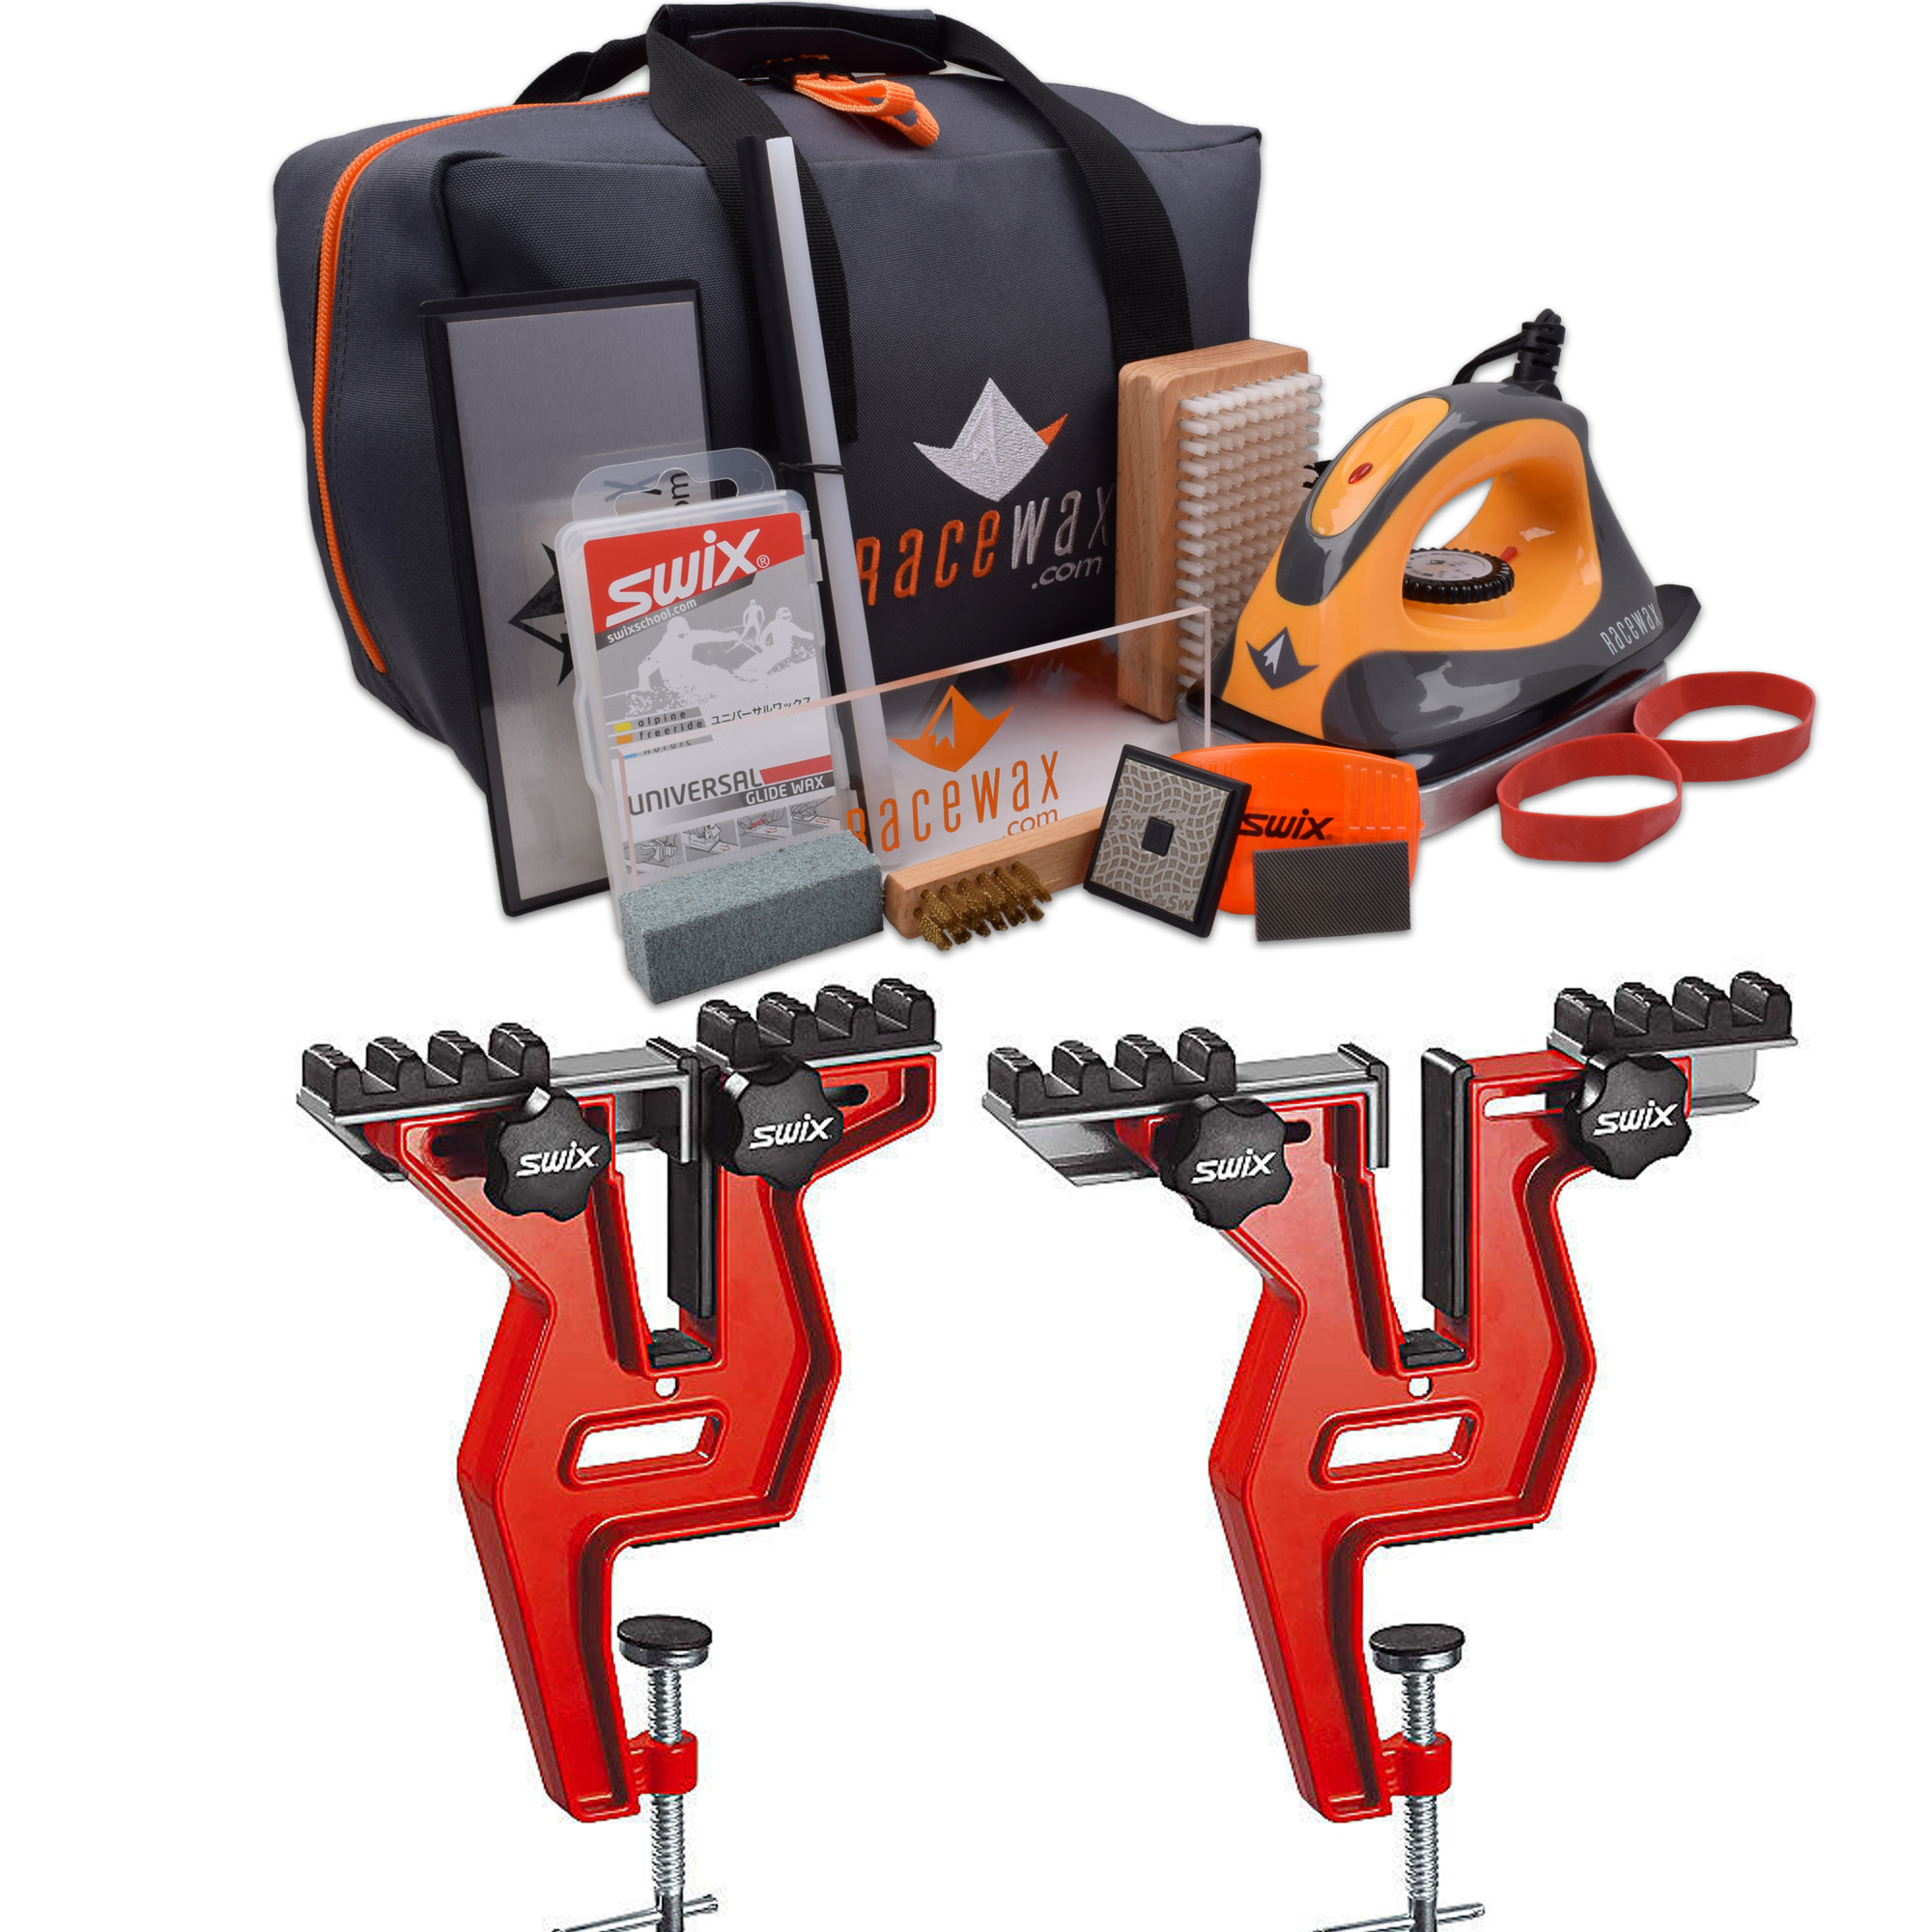 Snowboard Tuning Kits with Irons